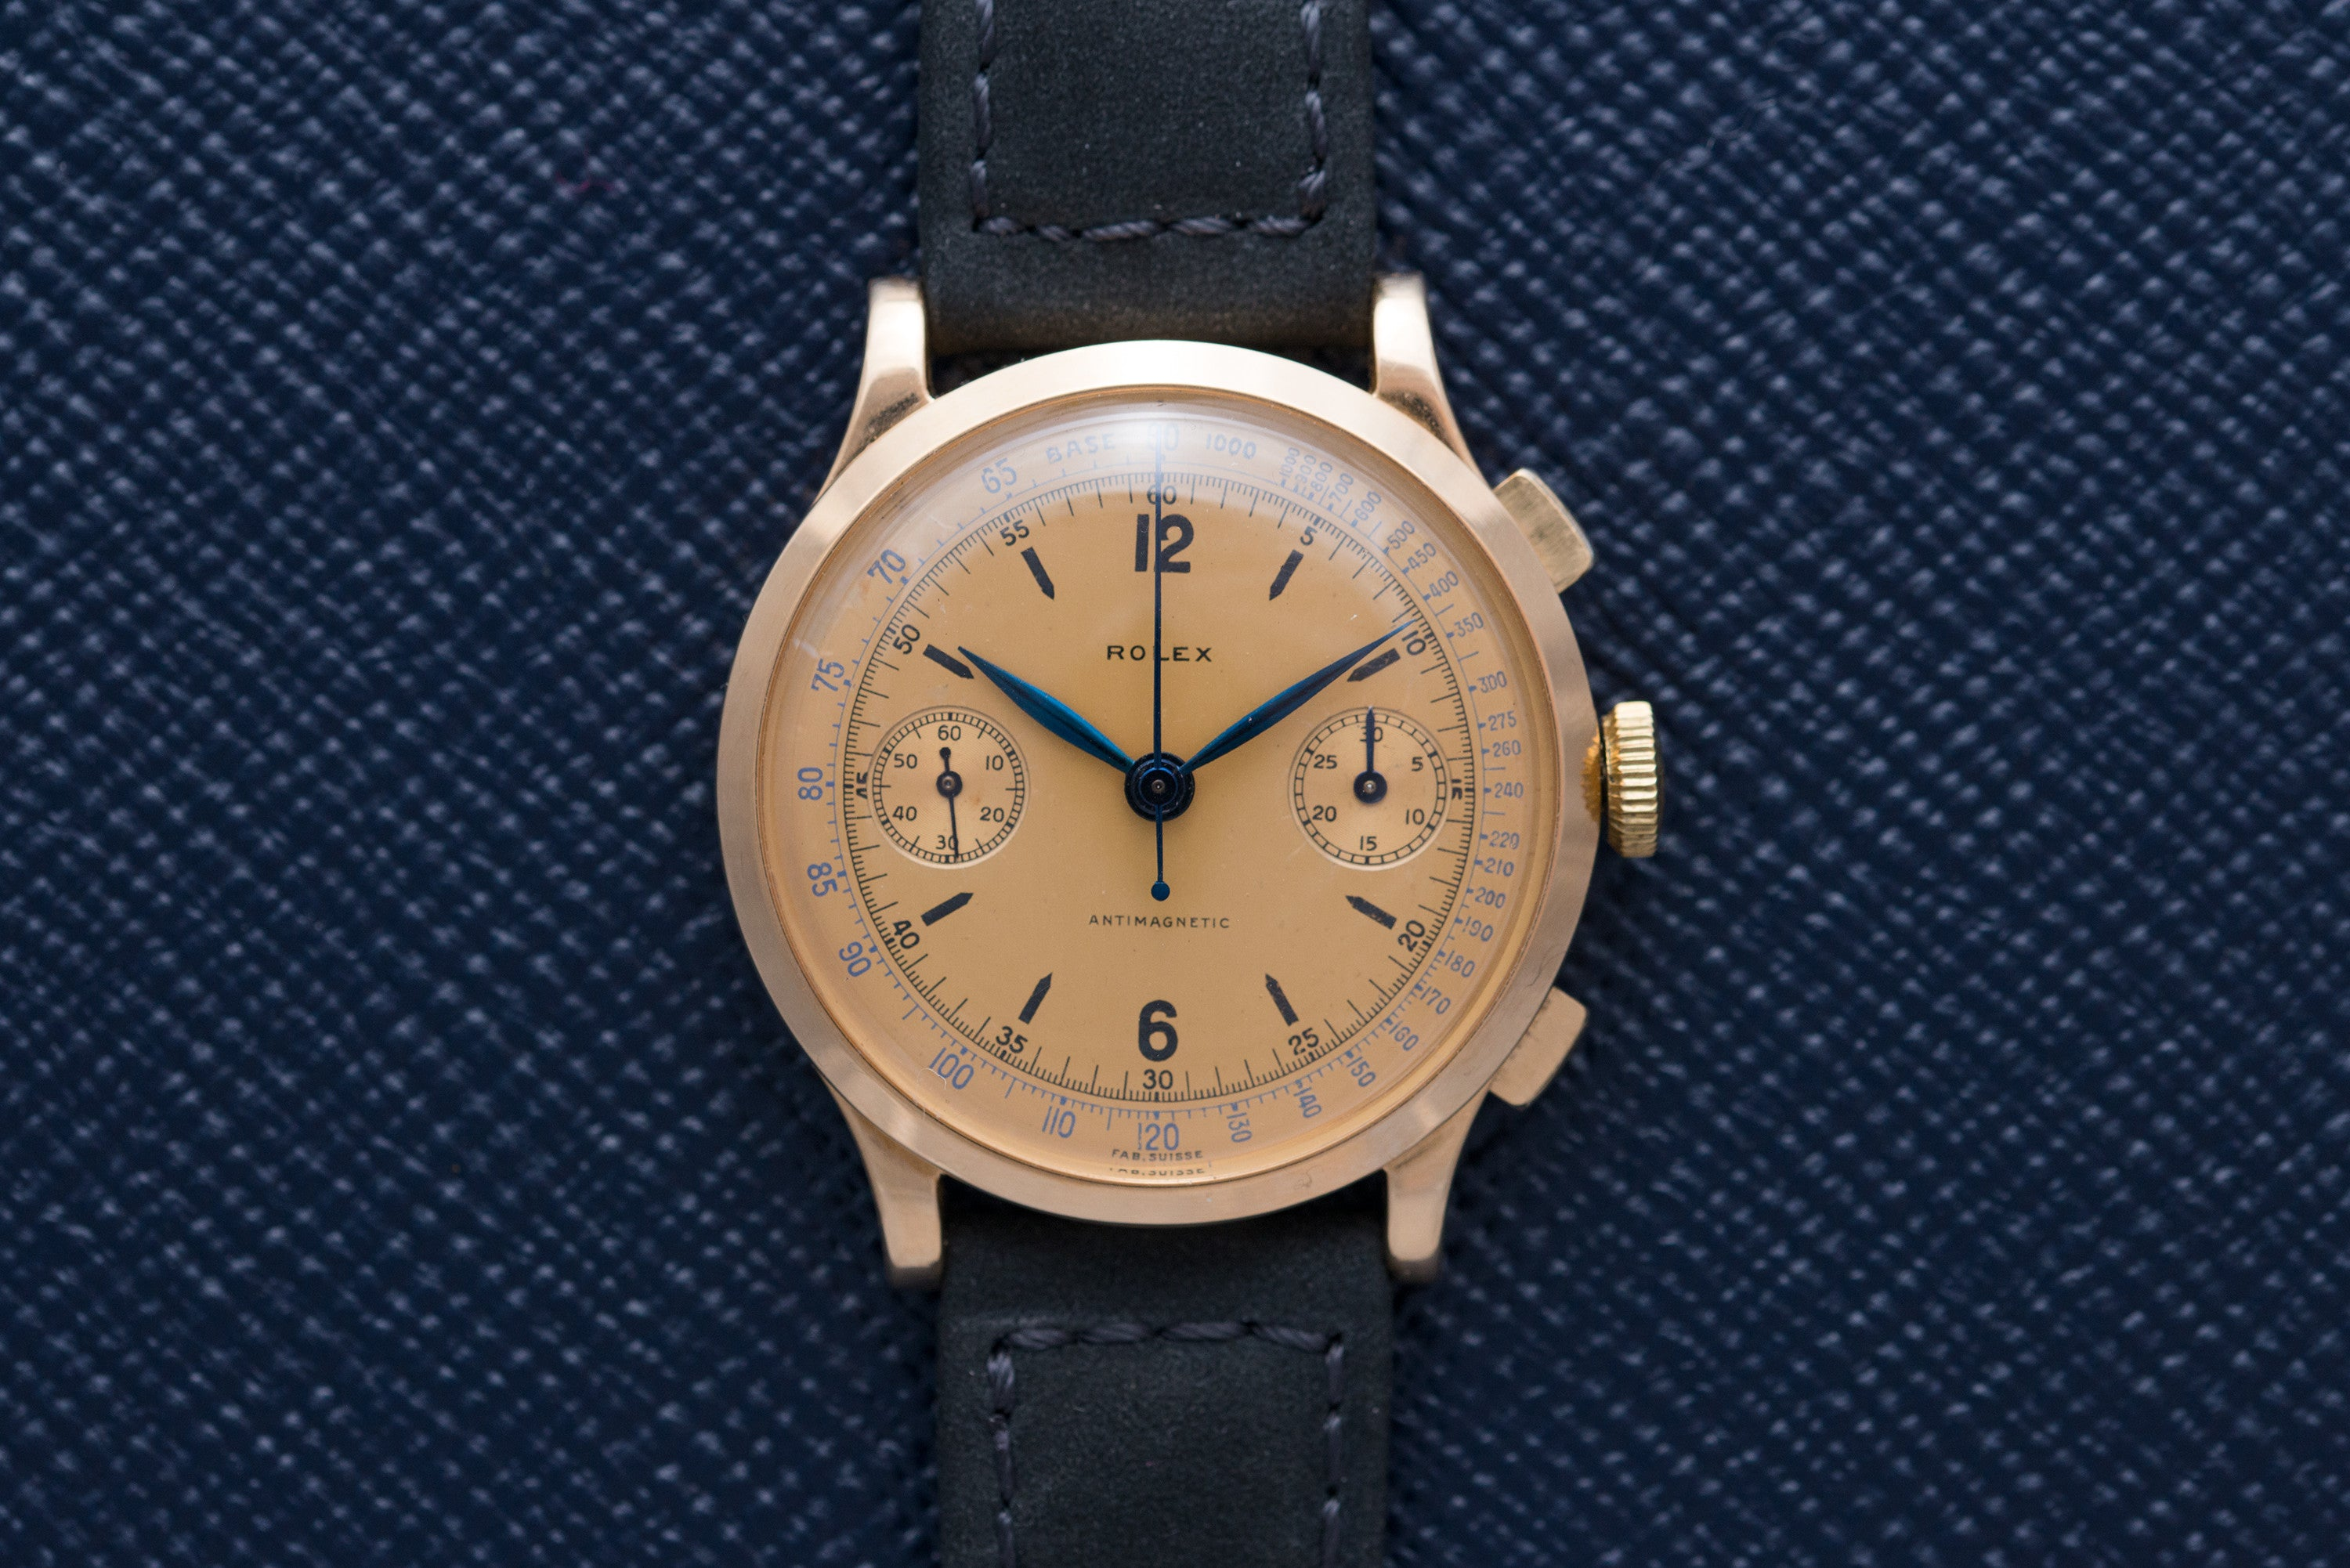 vintage Rolex Ref. 3695 chronograph with champagne dial at A Collected Man - seller of rare vintage watches